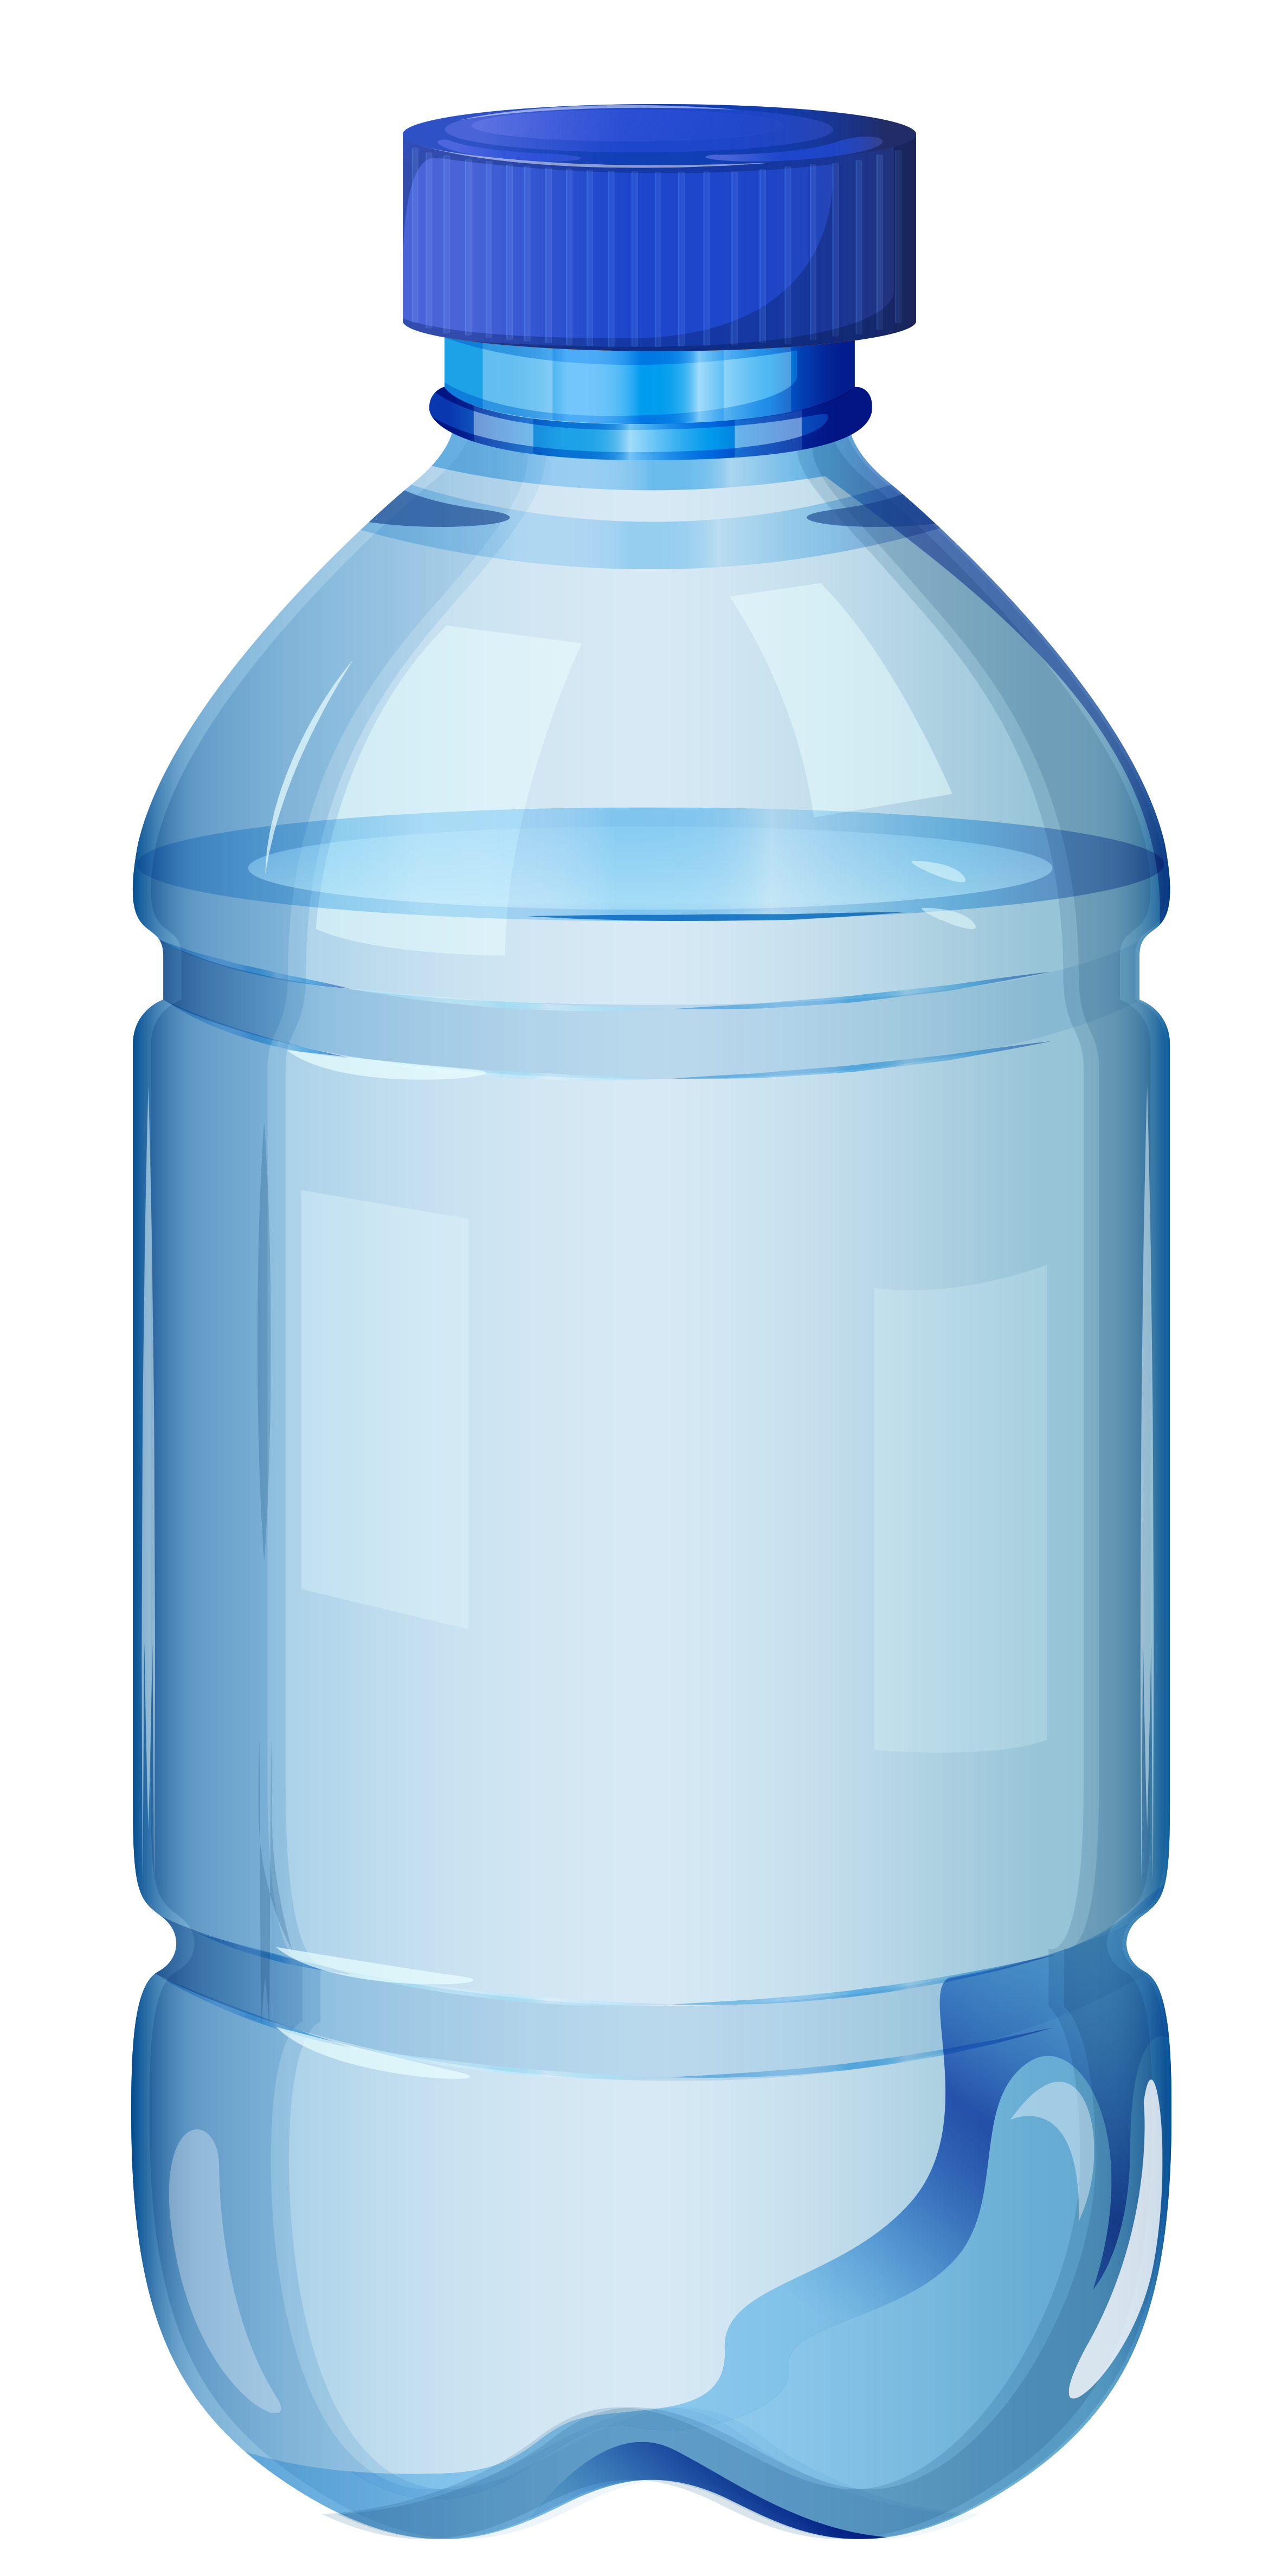 Bottle png. Water images free download